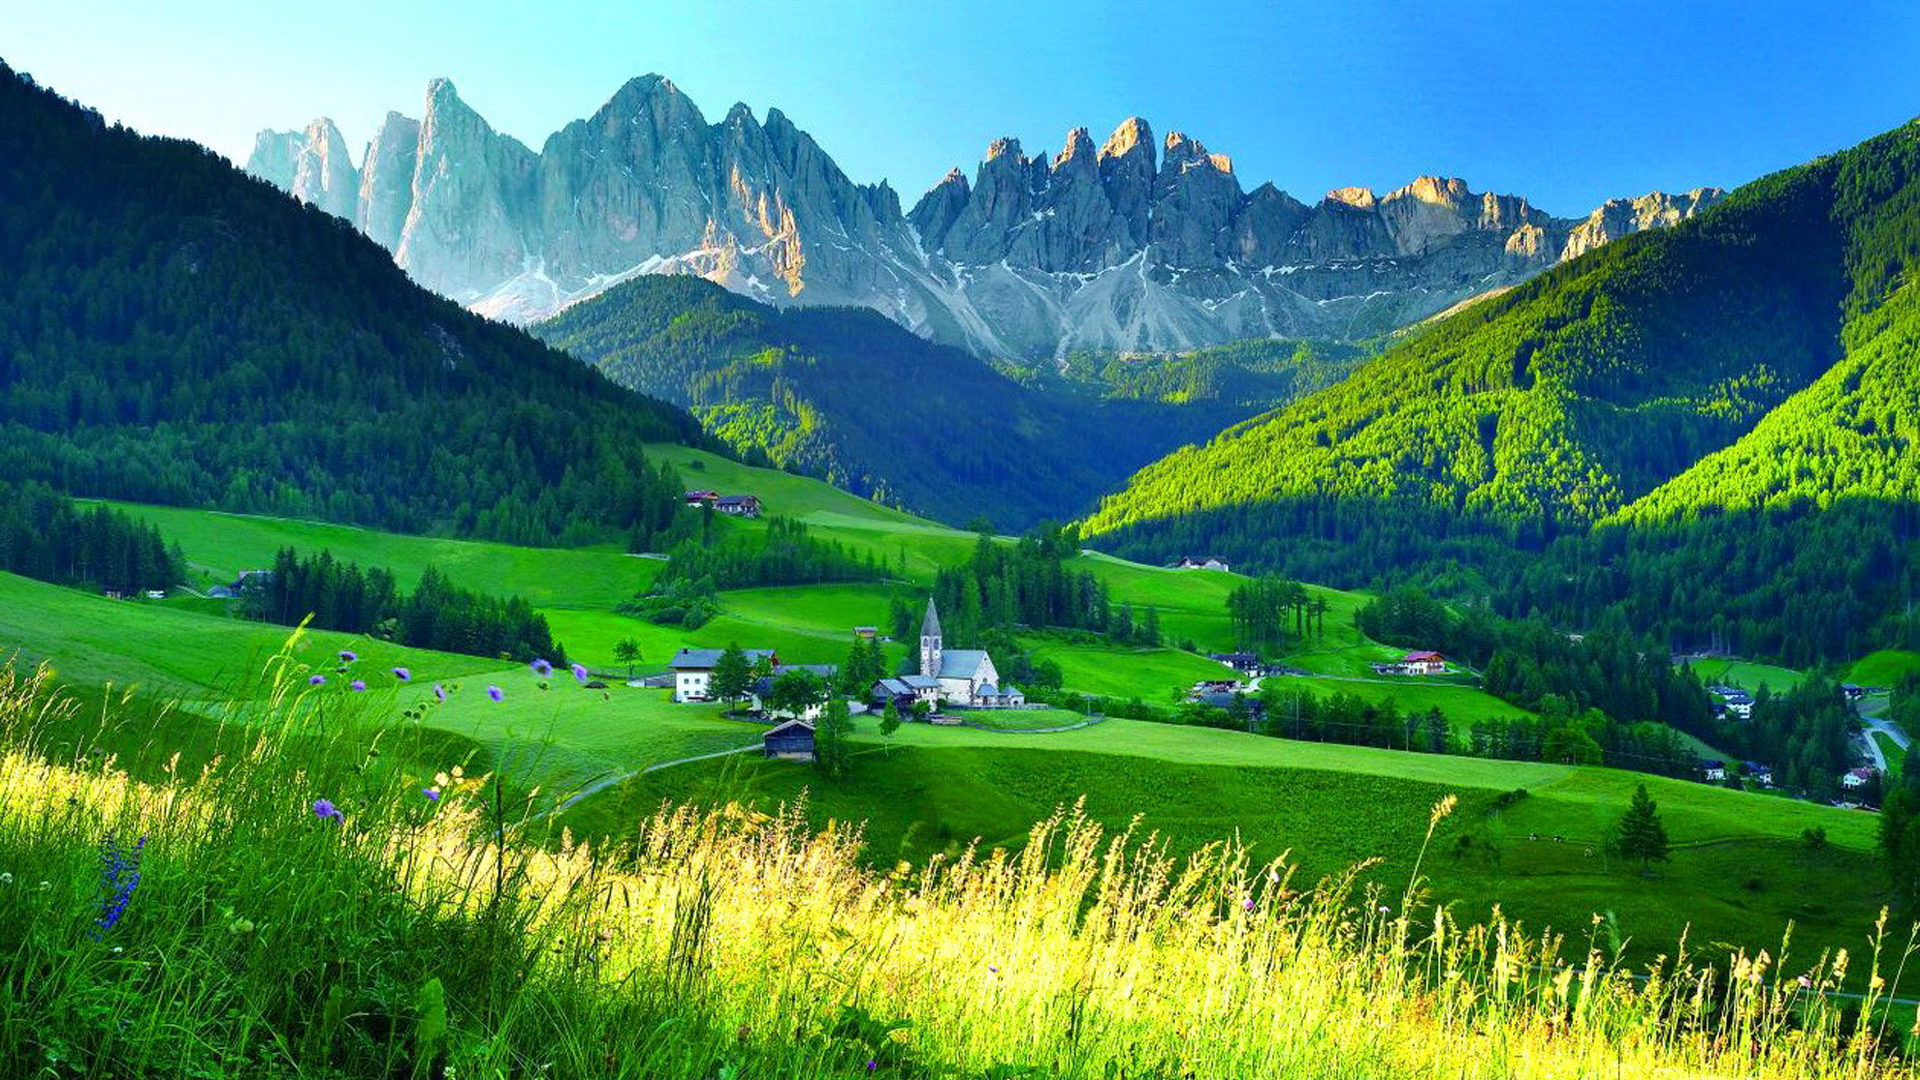 World Beautiful Cars Wallpapers Central Eastern Alps Mountain Chain Summer Village Peaks